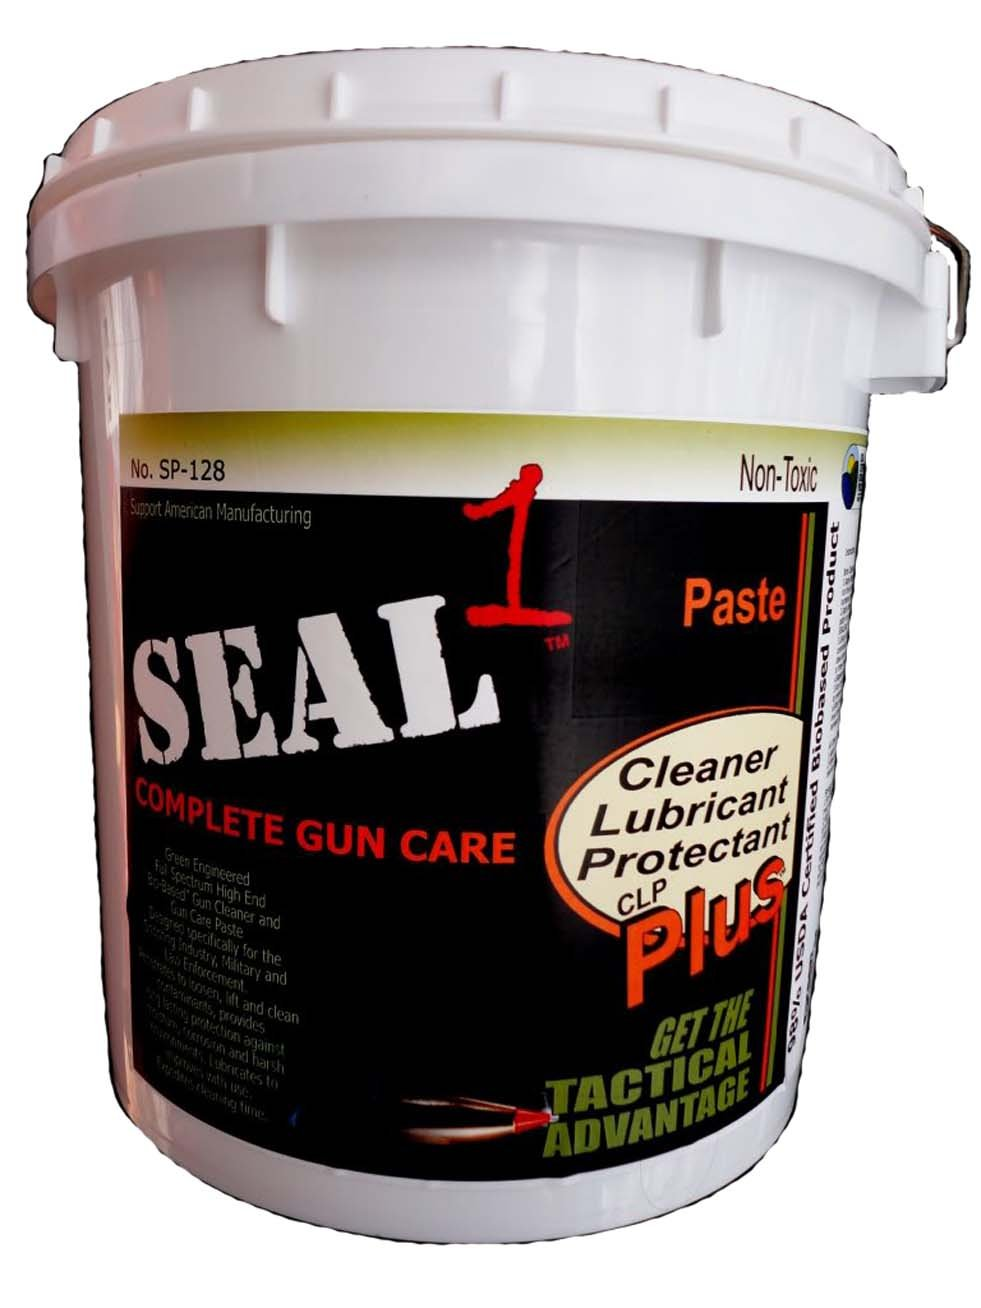 SEAL 1 CLP Plus Paste in Pail, 1-Gallon by SEAL 1